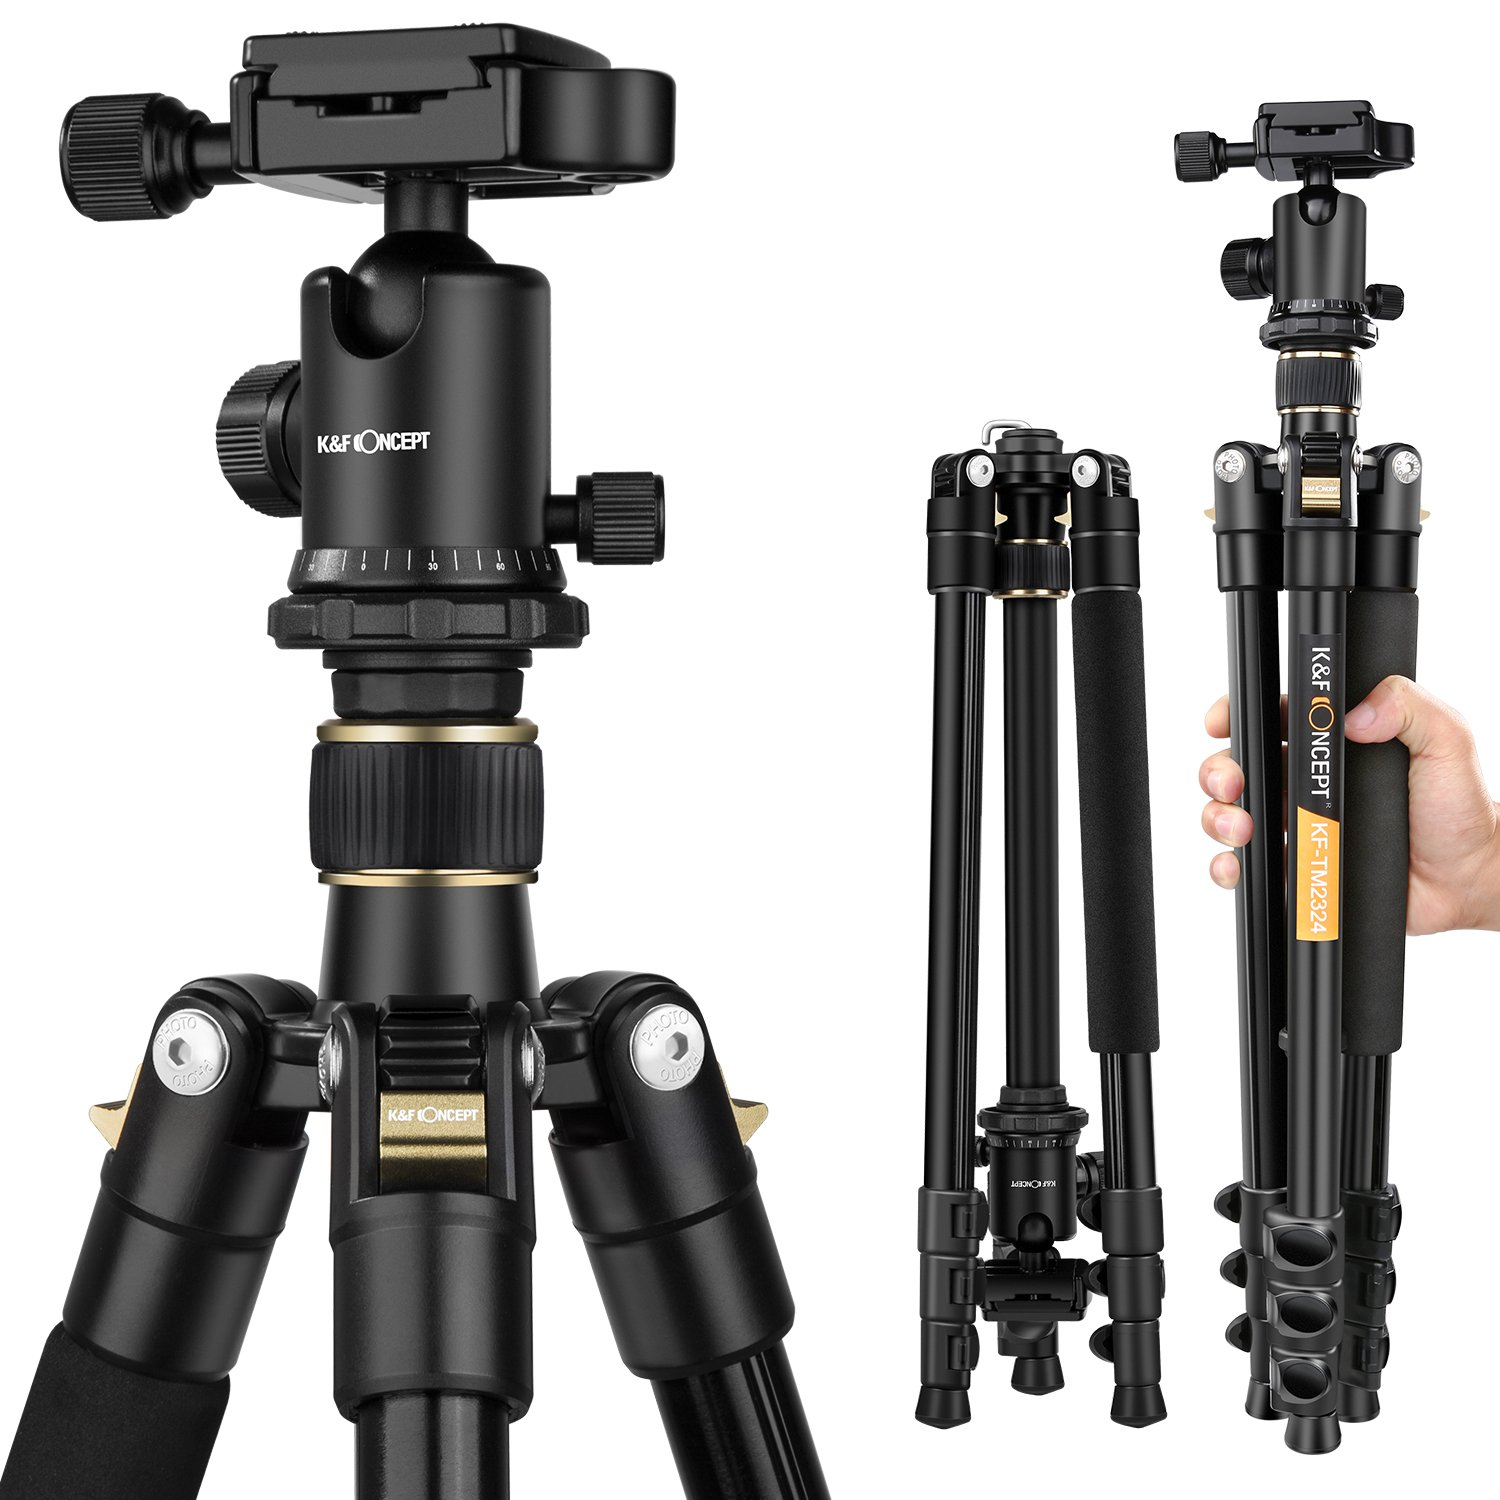 Camera Tripod, K&F Concept 62' Professional Aluminum Tripod TM2324 with Ball Head Quick Release Plate for Canon Nikon Sony Pentax Leica Fuji Lumix Olympus DSLR Camera Super Light-weight Golden Shenzhen Zhuoer Photograph KF09.007